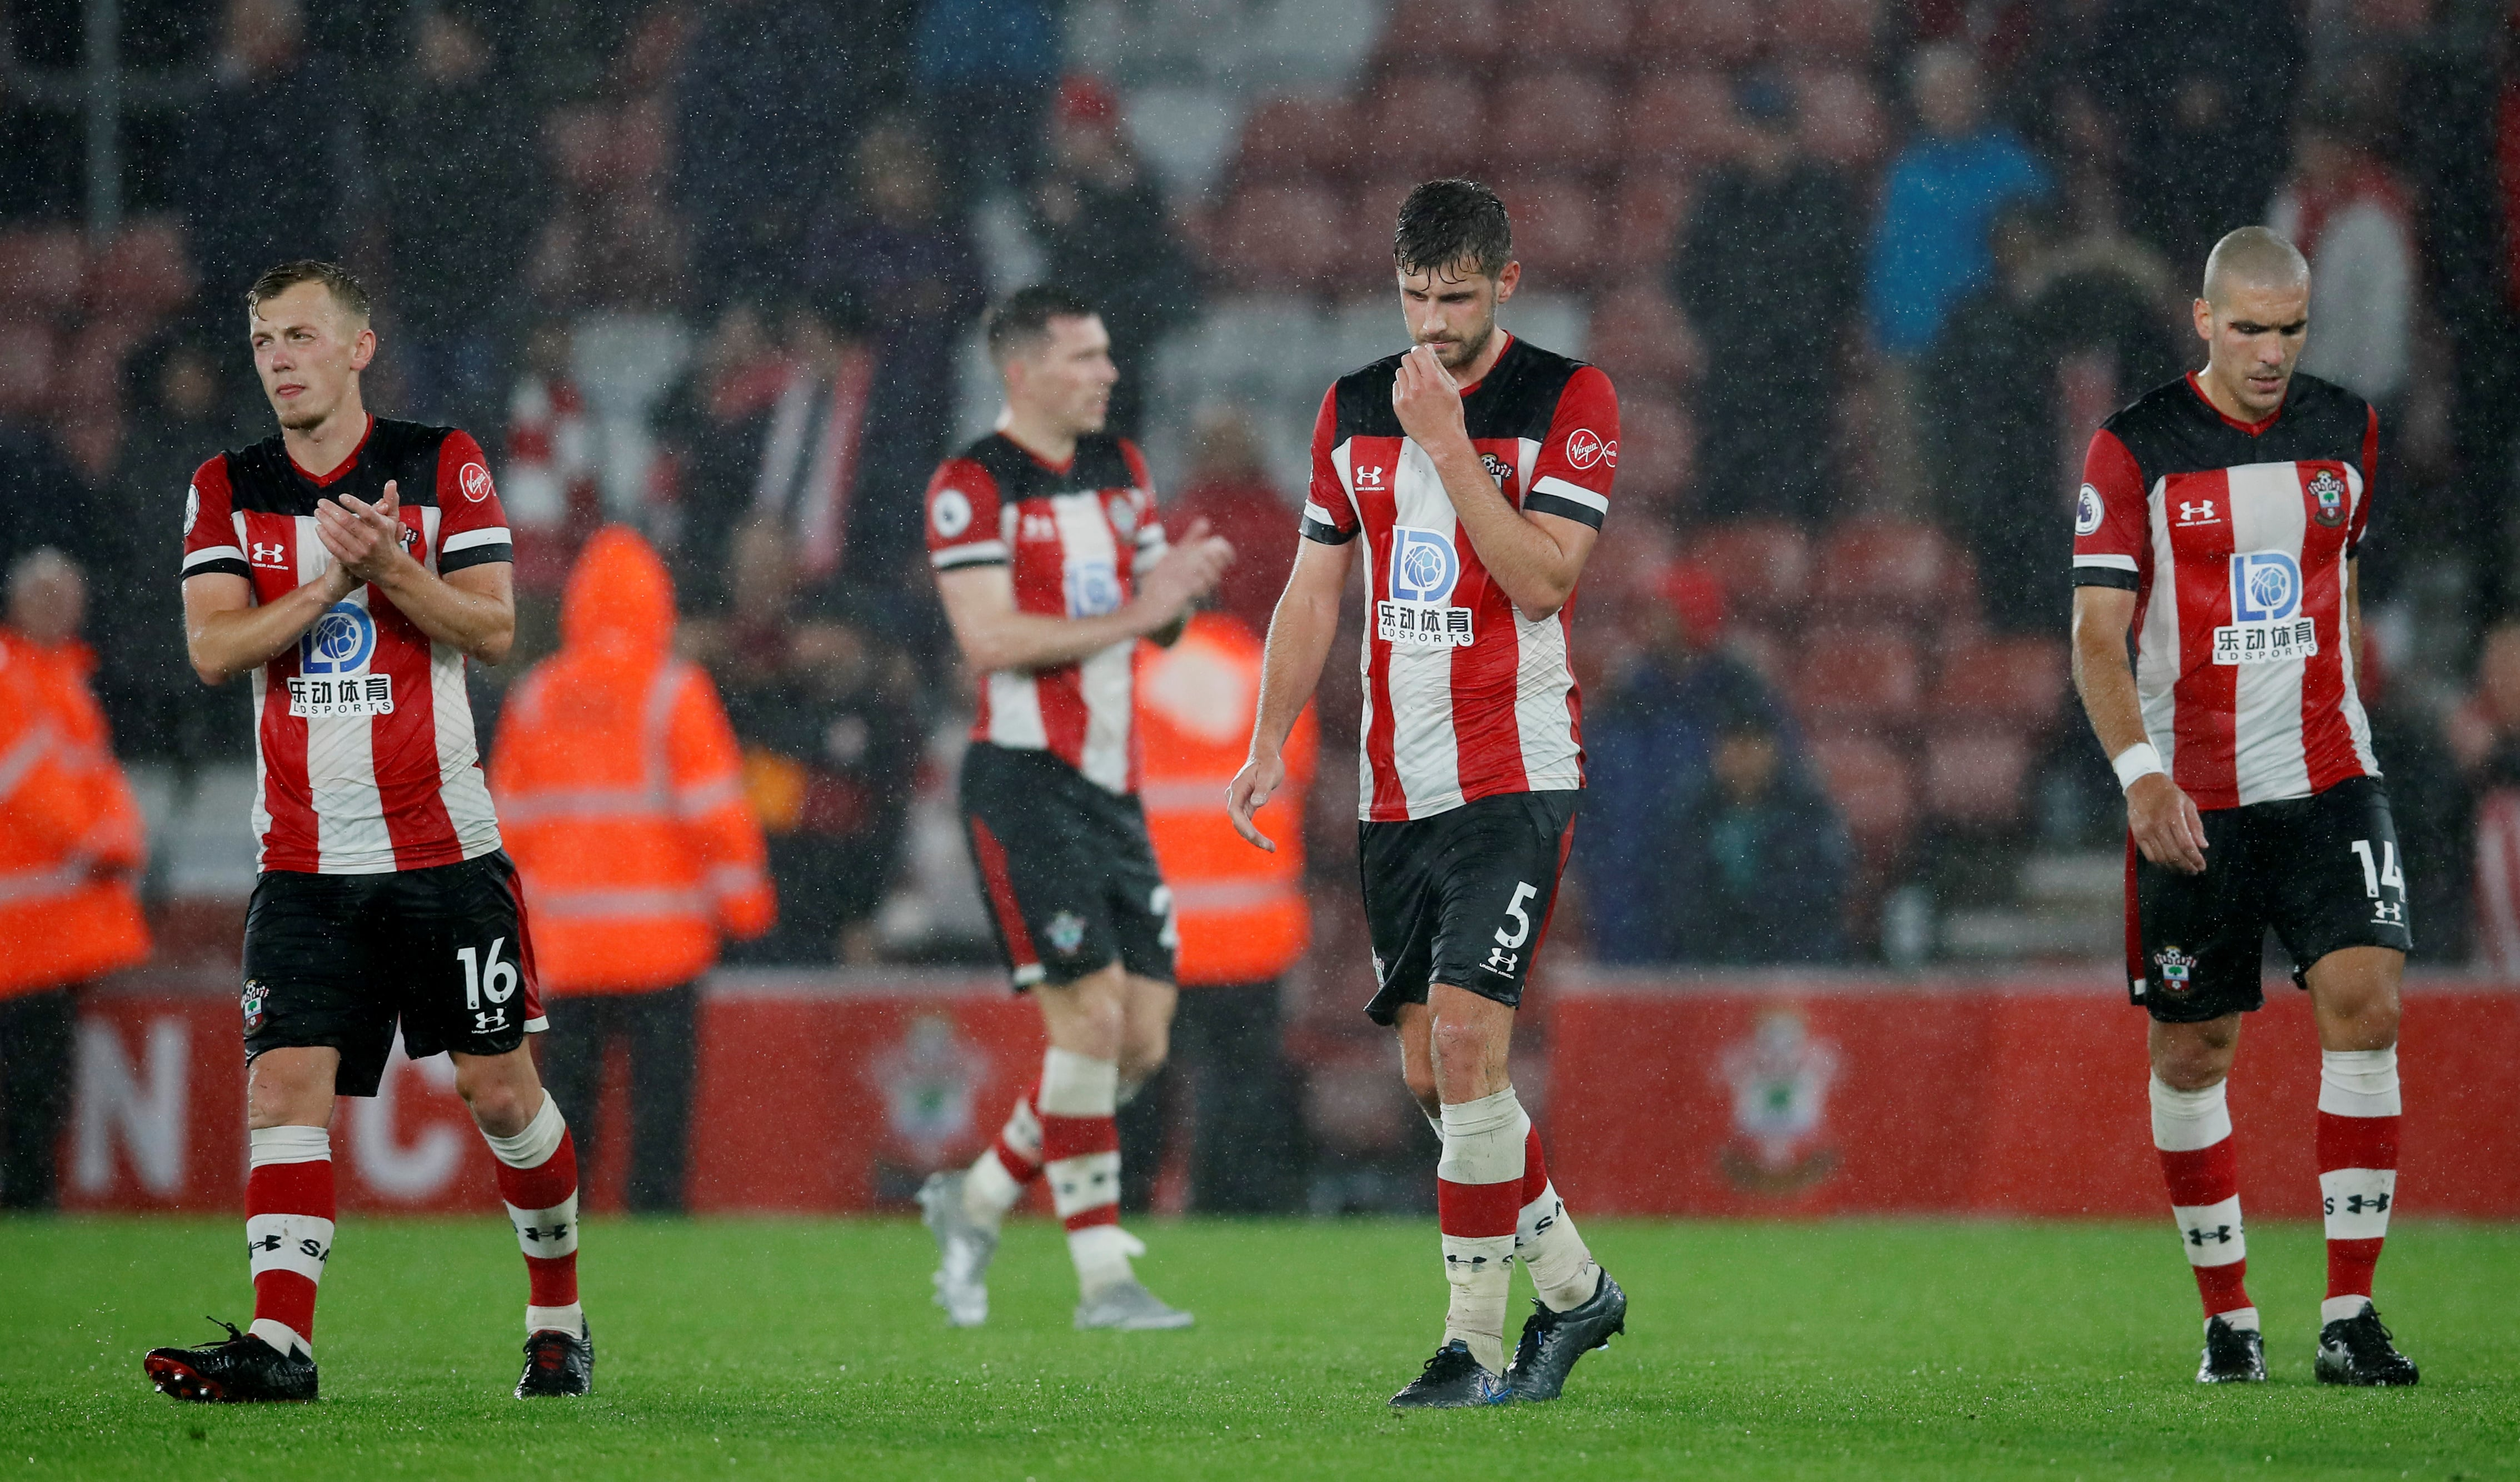 Southampton players donate wages to charity after Leicester humiliation